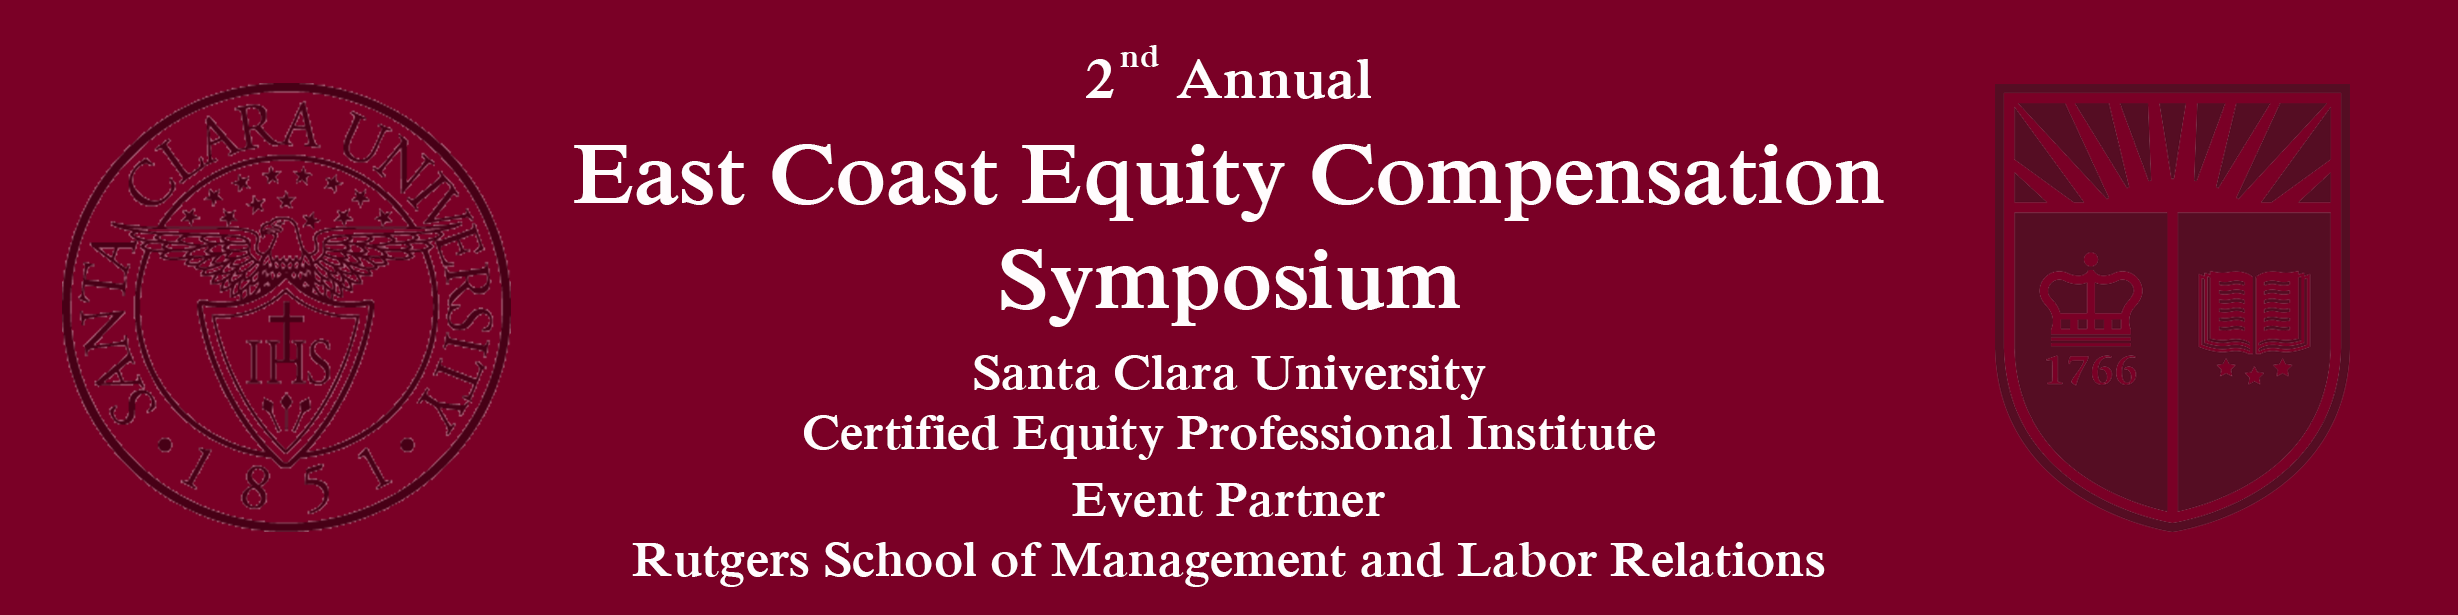 2nd Annual East Coast Equity Compensation Symposium